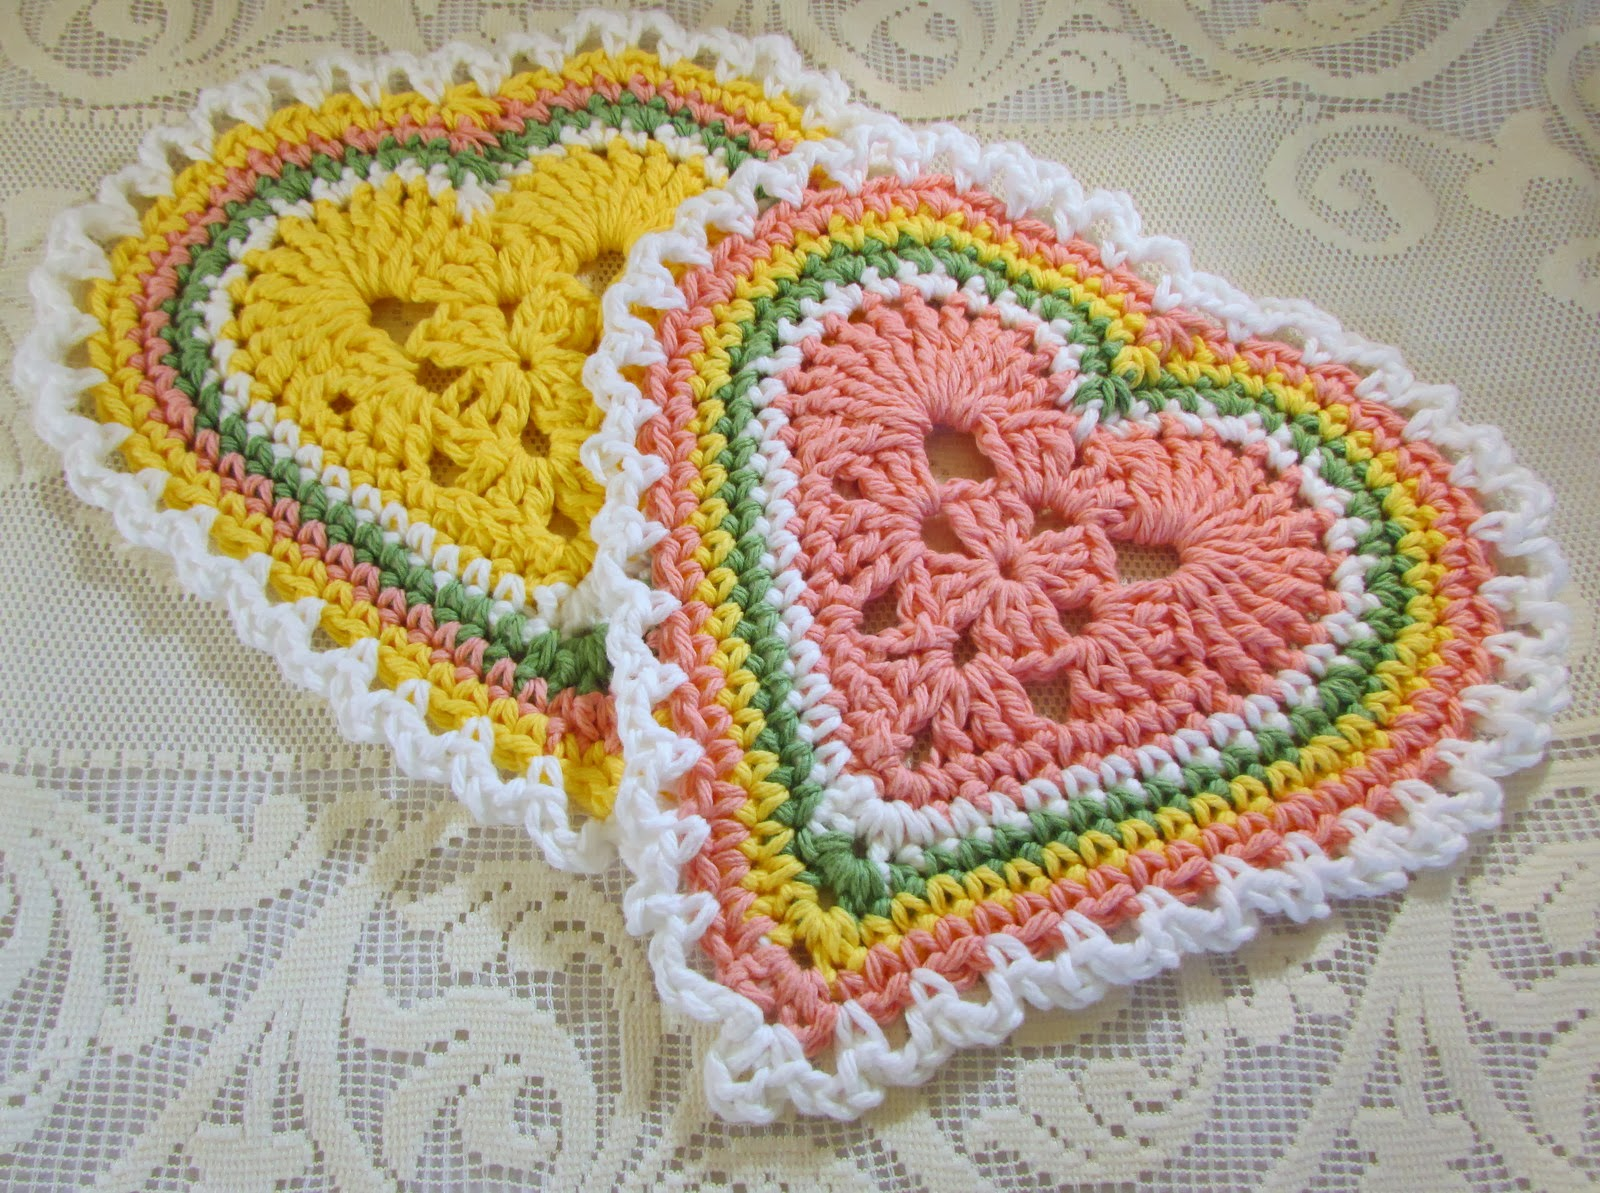 Free Crochet Dishcloth And Potholder Pattern : Nancy Drew Designs: Heart dishcloths